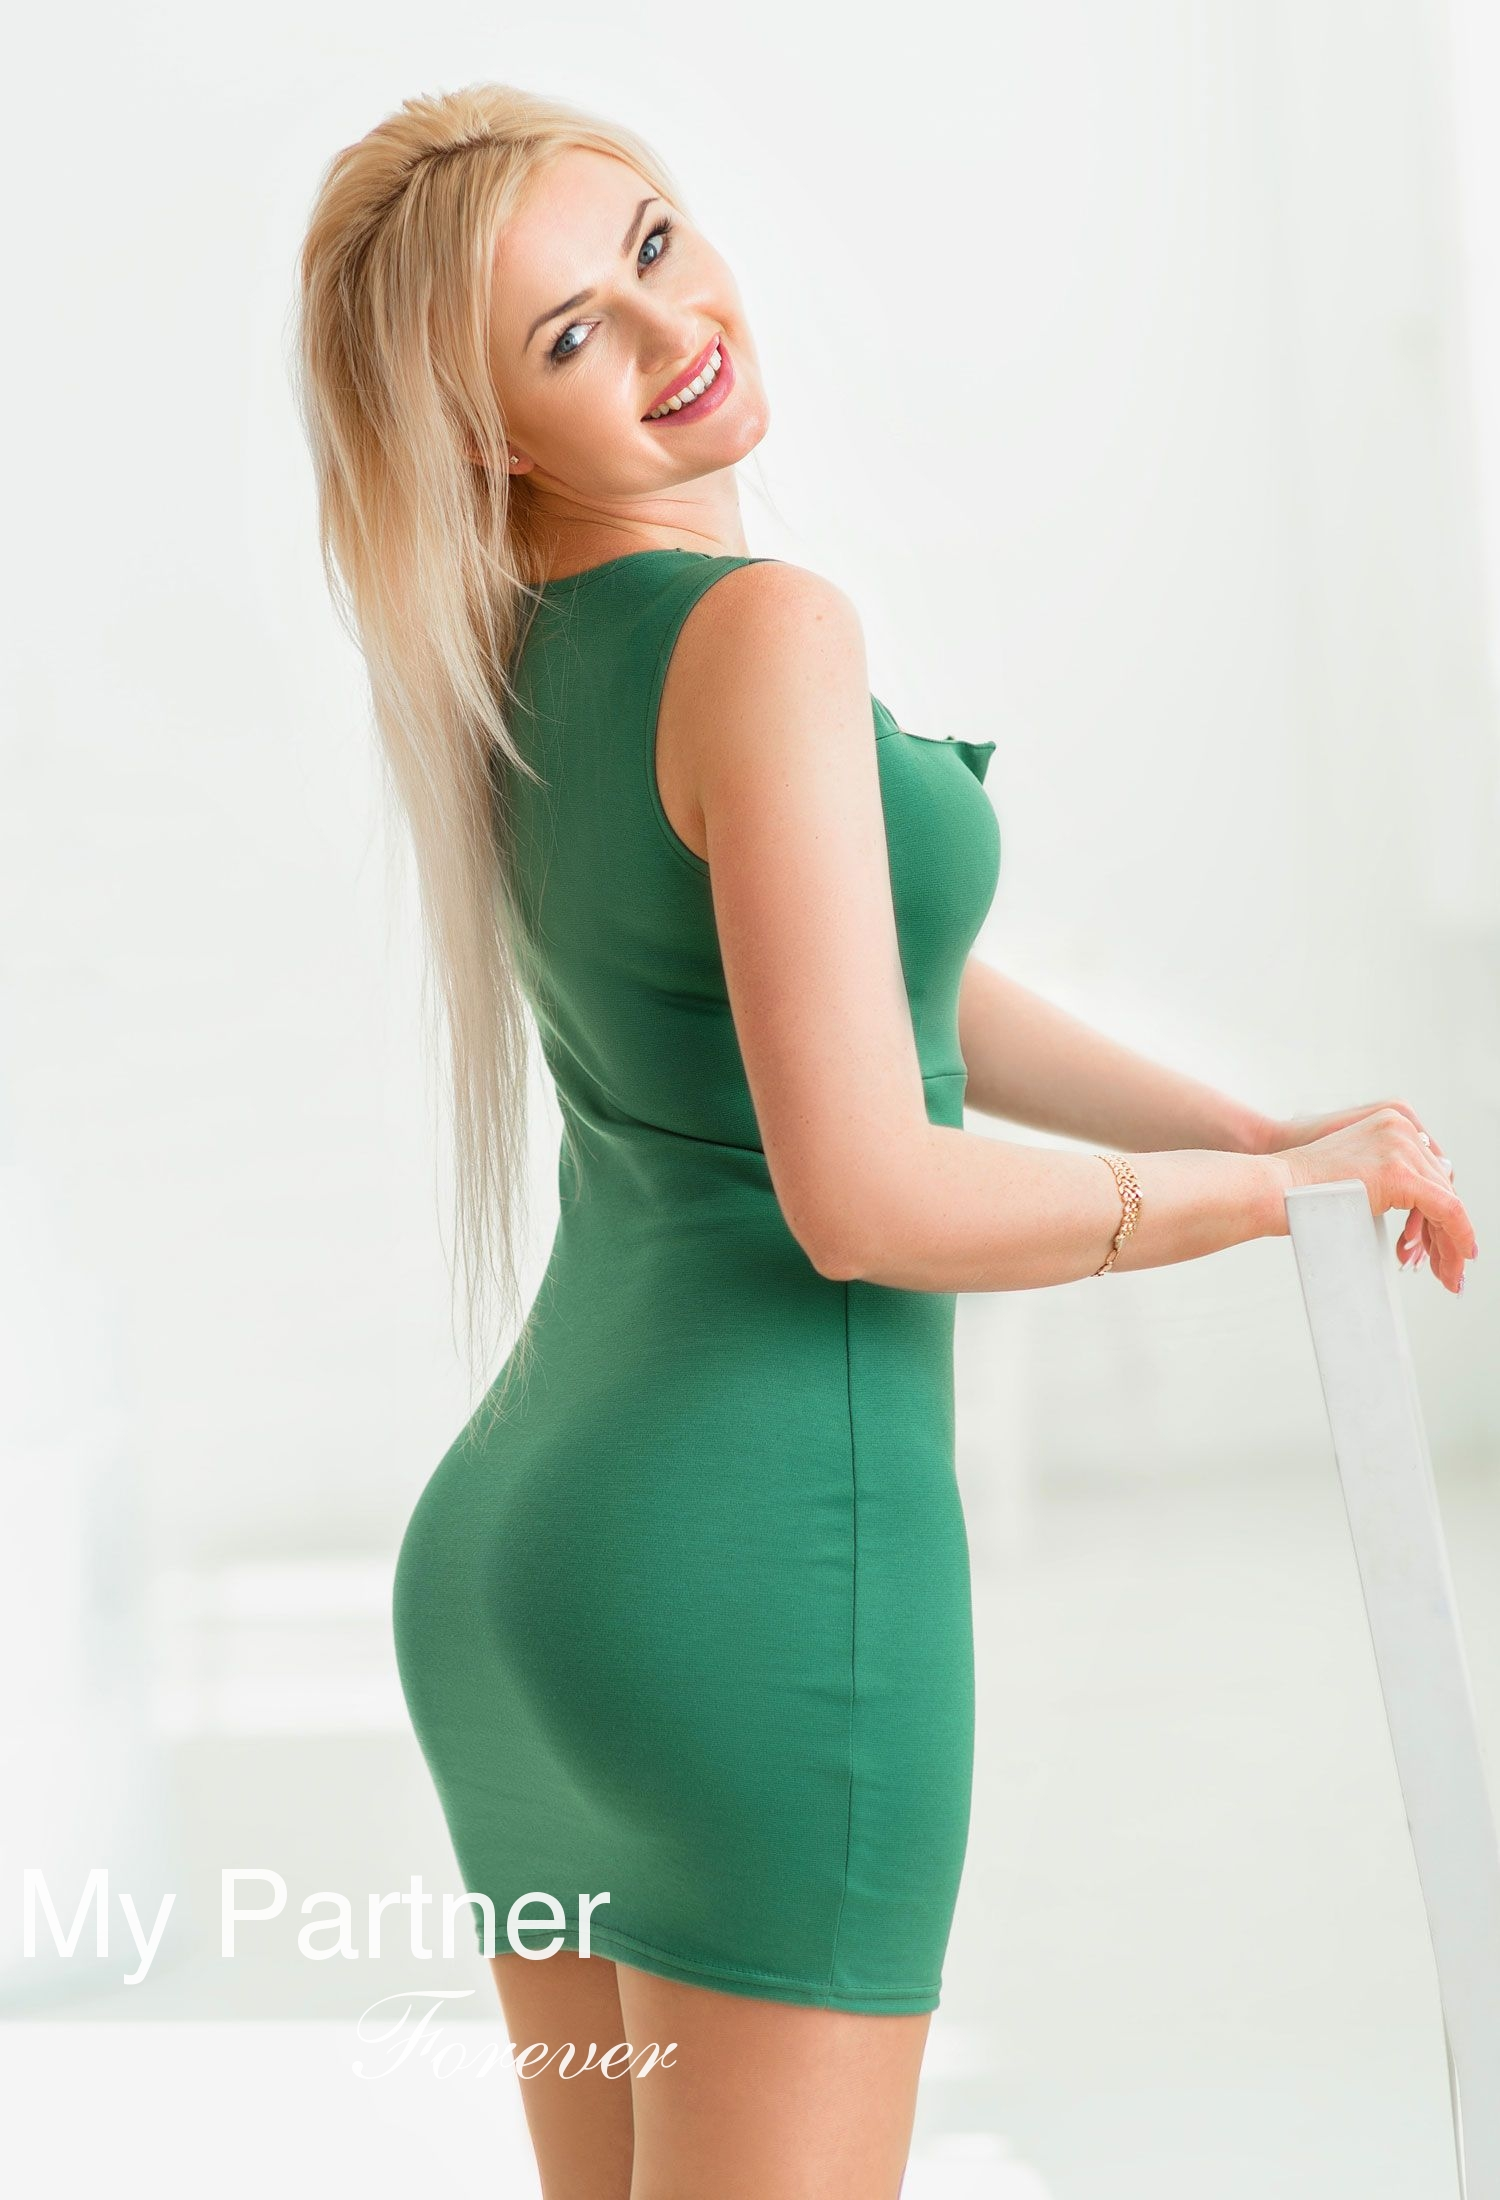 russian women dating service